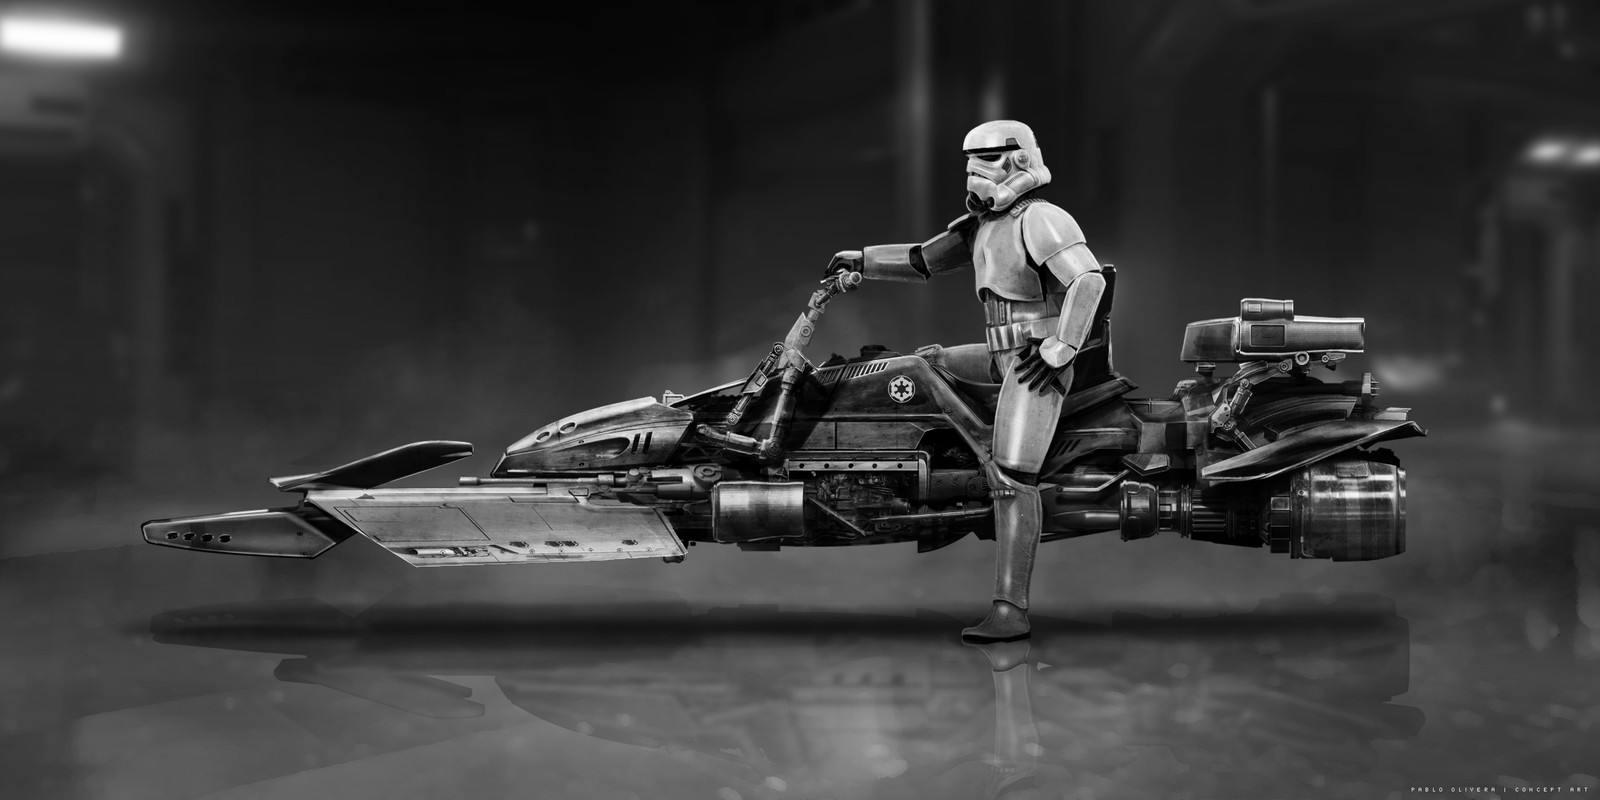 ILM Art Department Challenge - The Ride / Vehicle #1